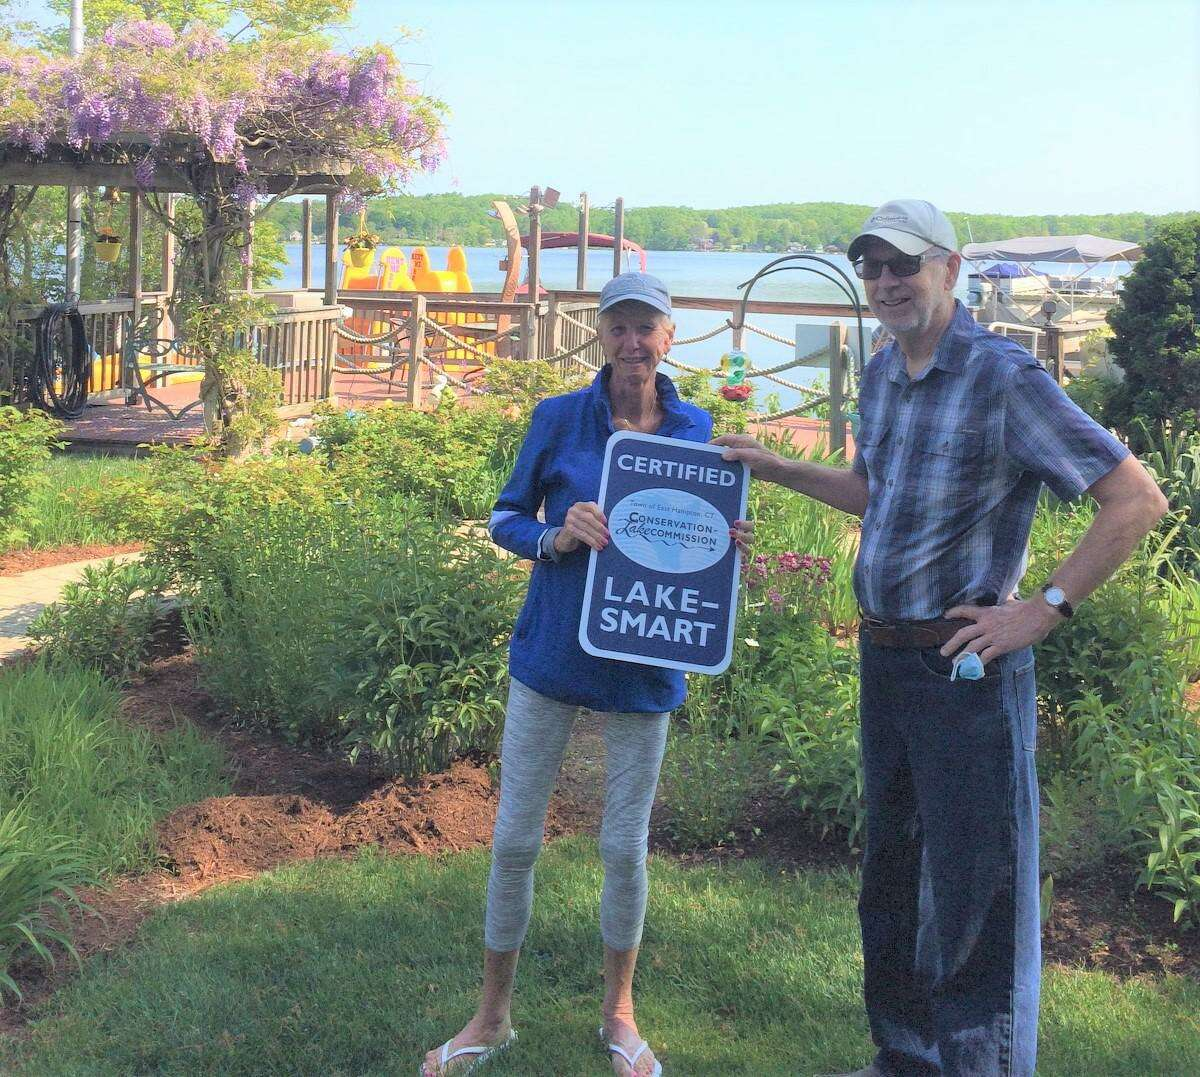 In June, Marty Podskoch of the East Hampton Conservation & Lake Commission, right, presented Gladys Yeager, owner of The Happiest Paddler marina, with the Lake Smart Award for managing her property to benefit Lake Pocotopaug.